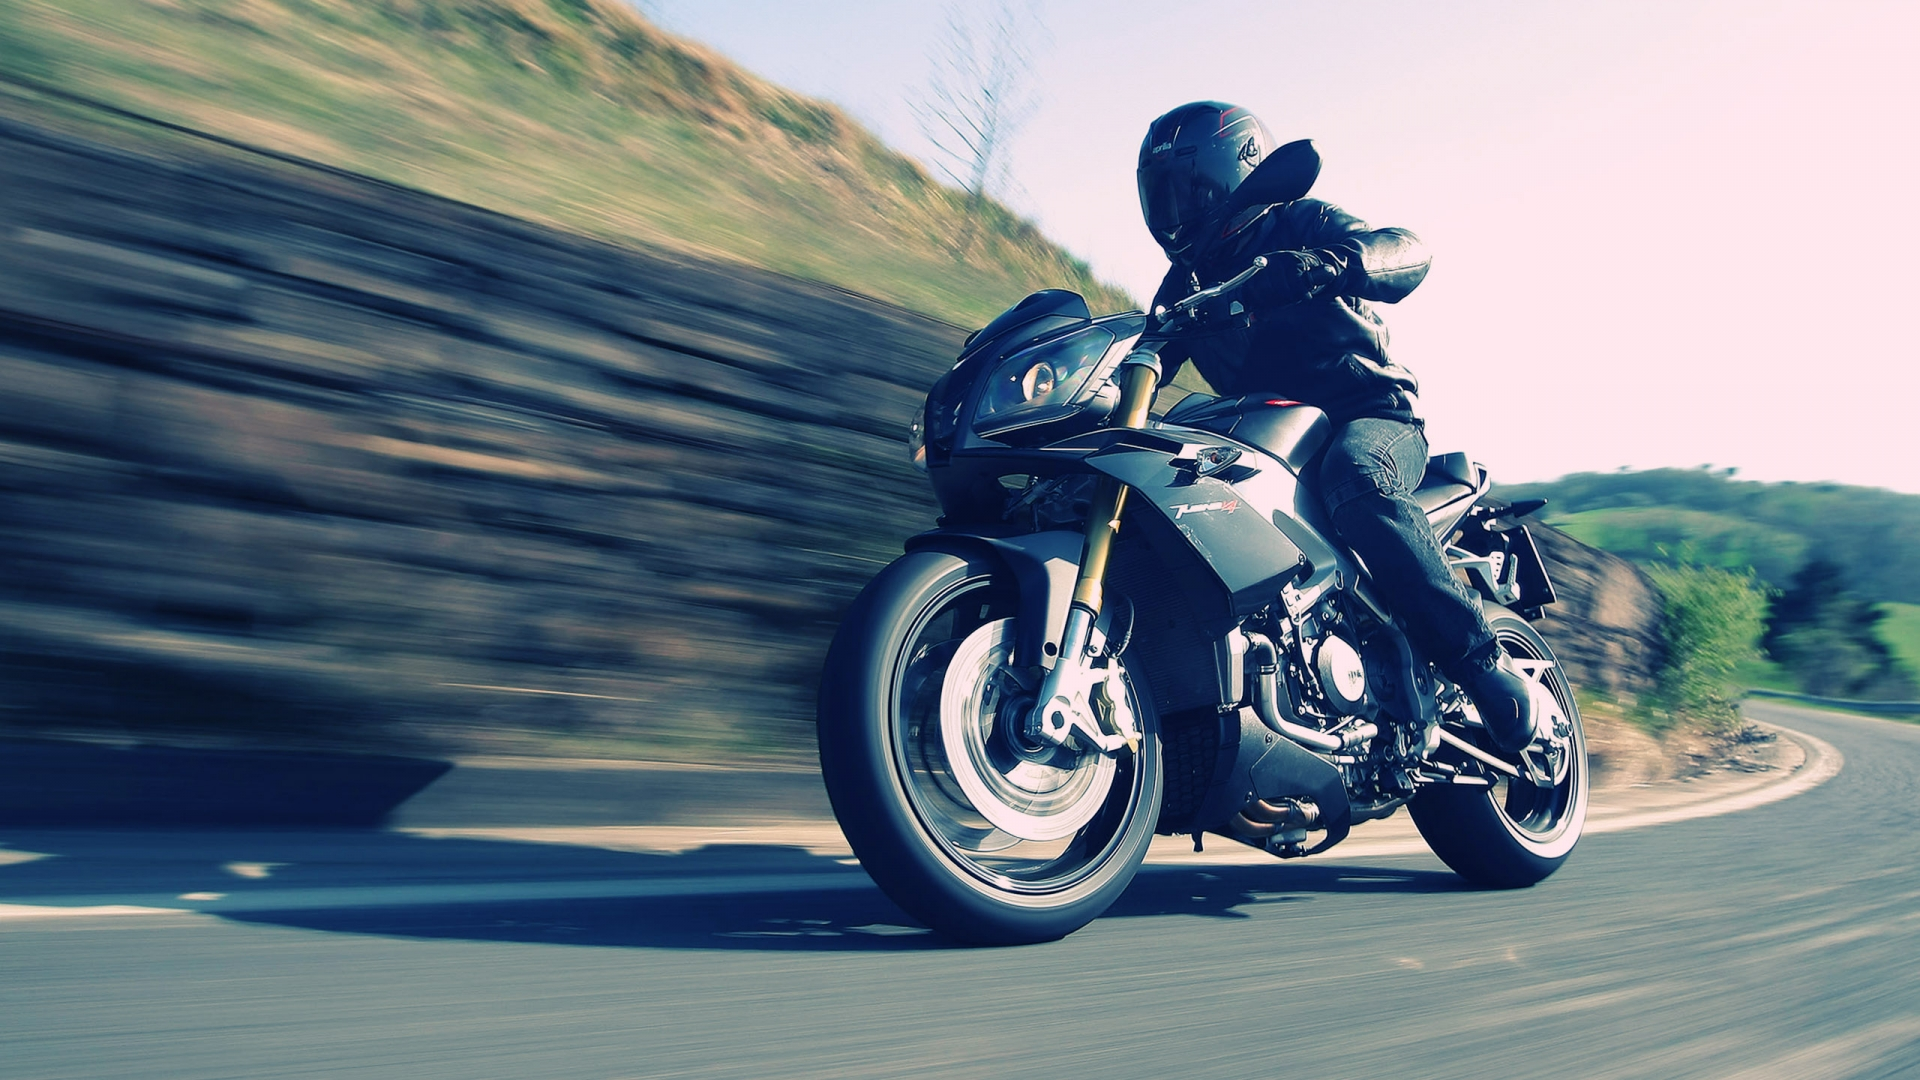 <h2>Motorcycle Licence</h2><p>Licences for all motorcycle categories</p><div class='bgslideshowmore'><a href='http://www.sxoliodigonxatzigiannis.gr/more2.php?l=en&id=7843' >More...</a></div>